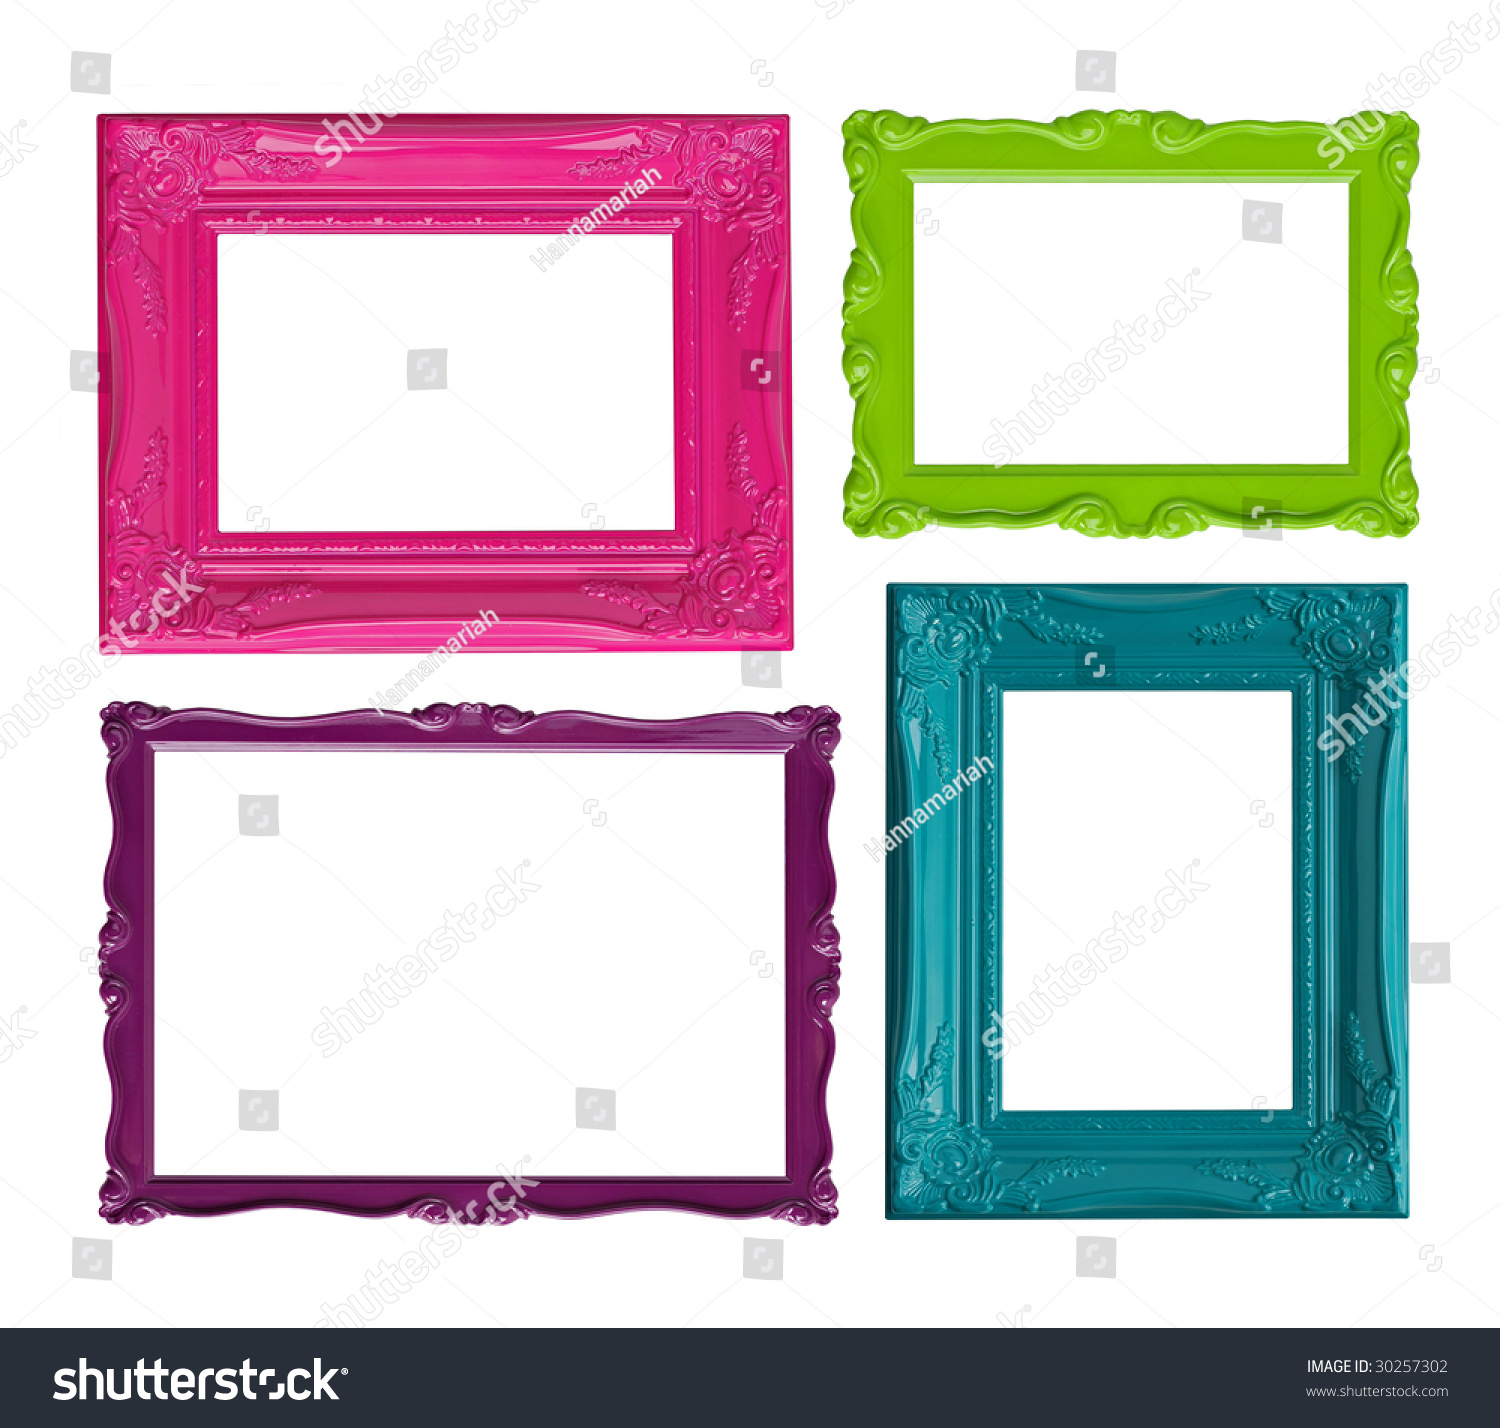 four contemporary picture frames in high resolution vibrant colors